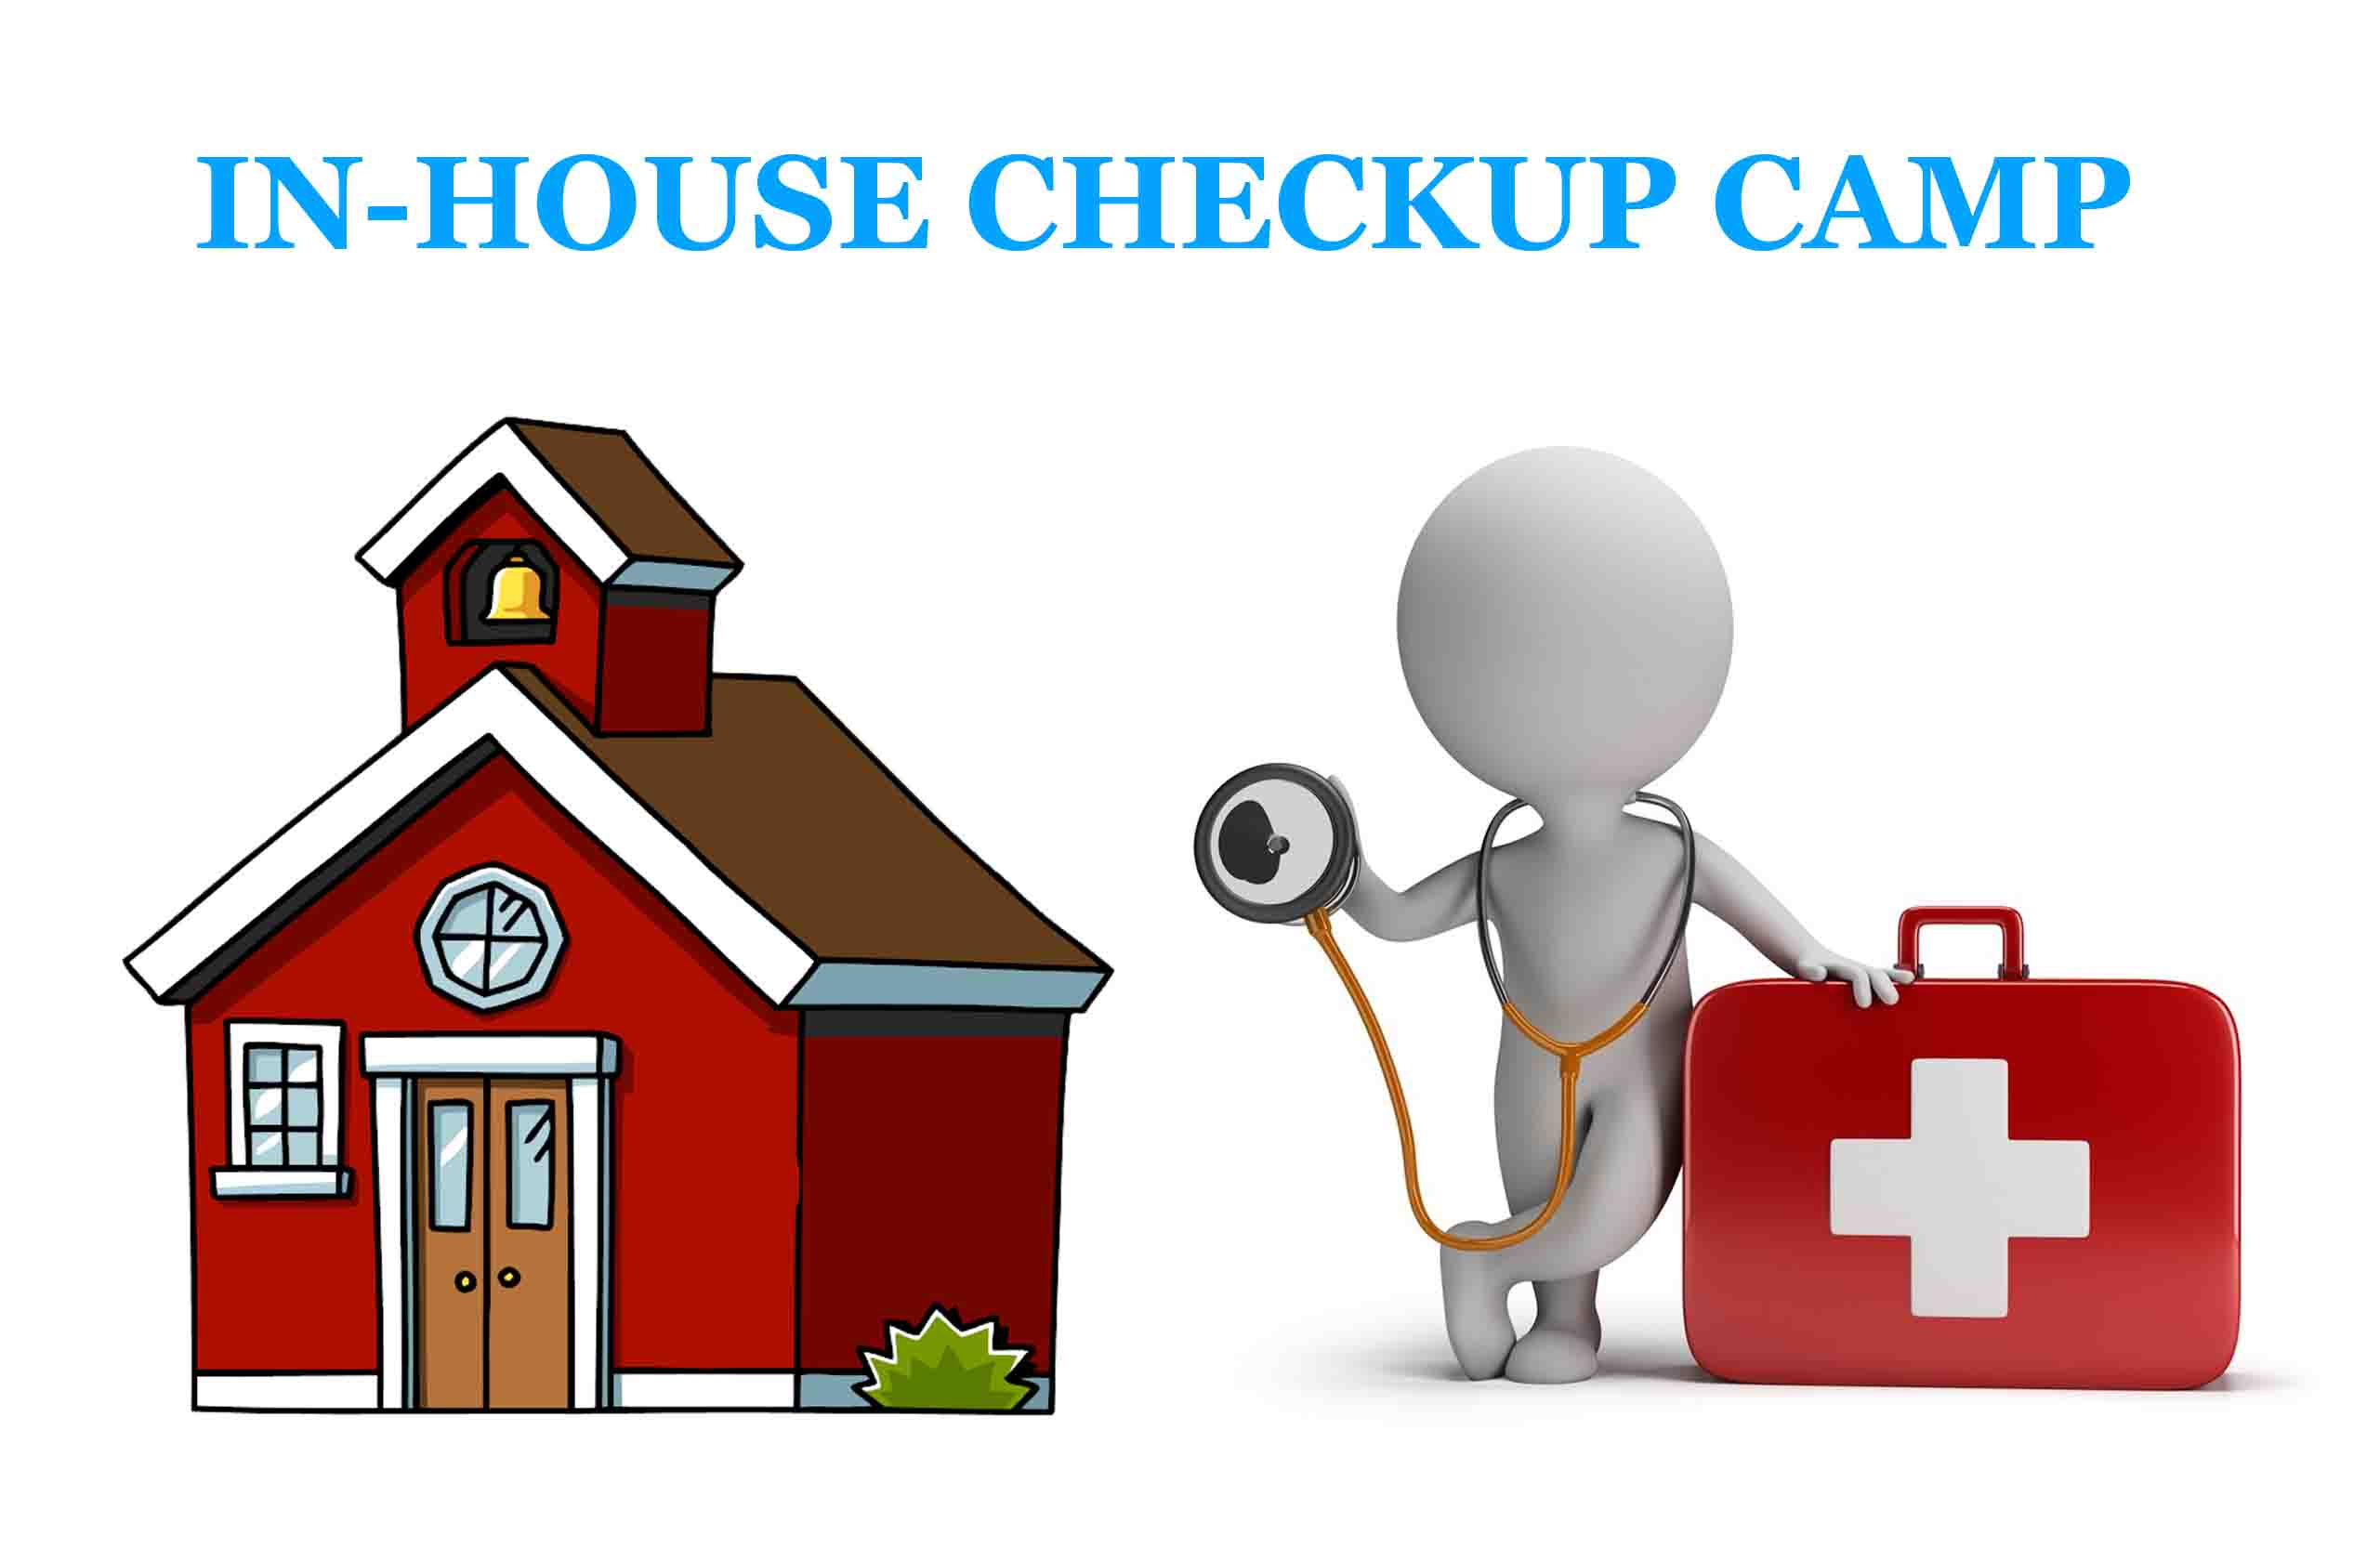 In-house checkup camp